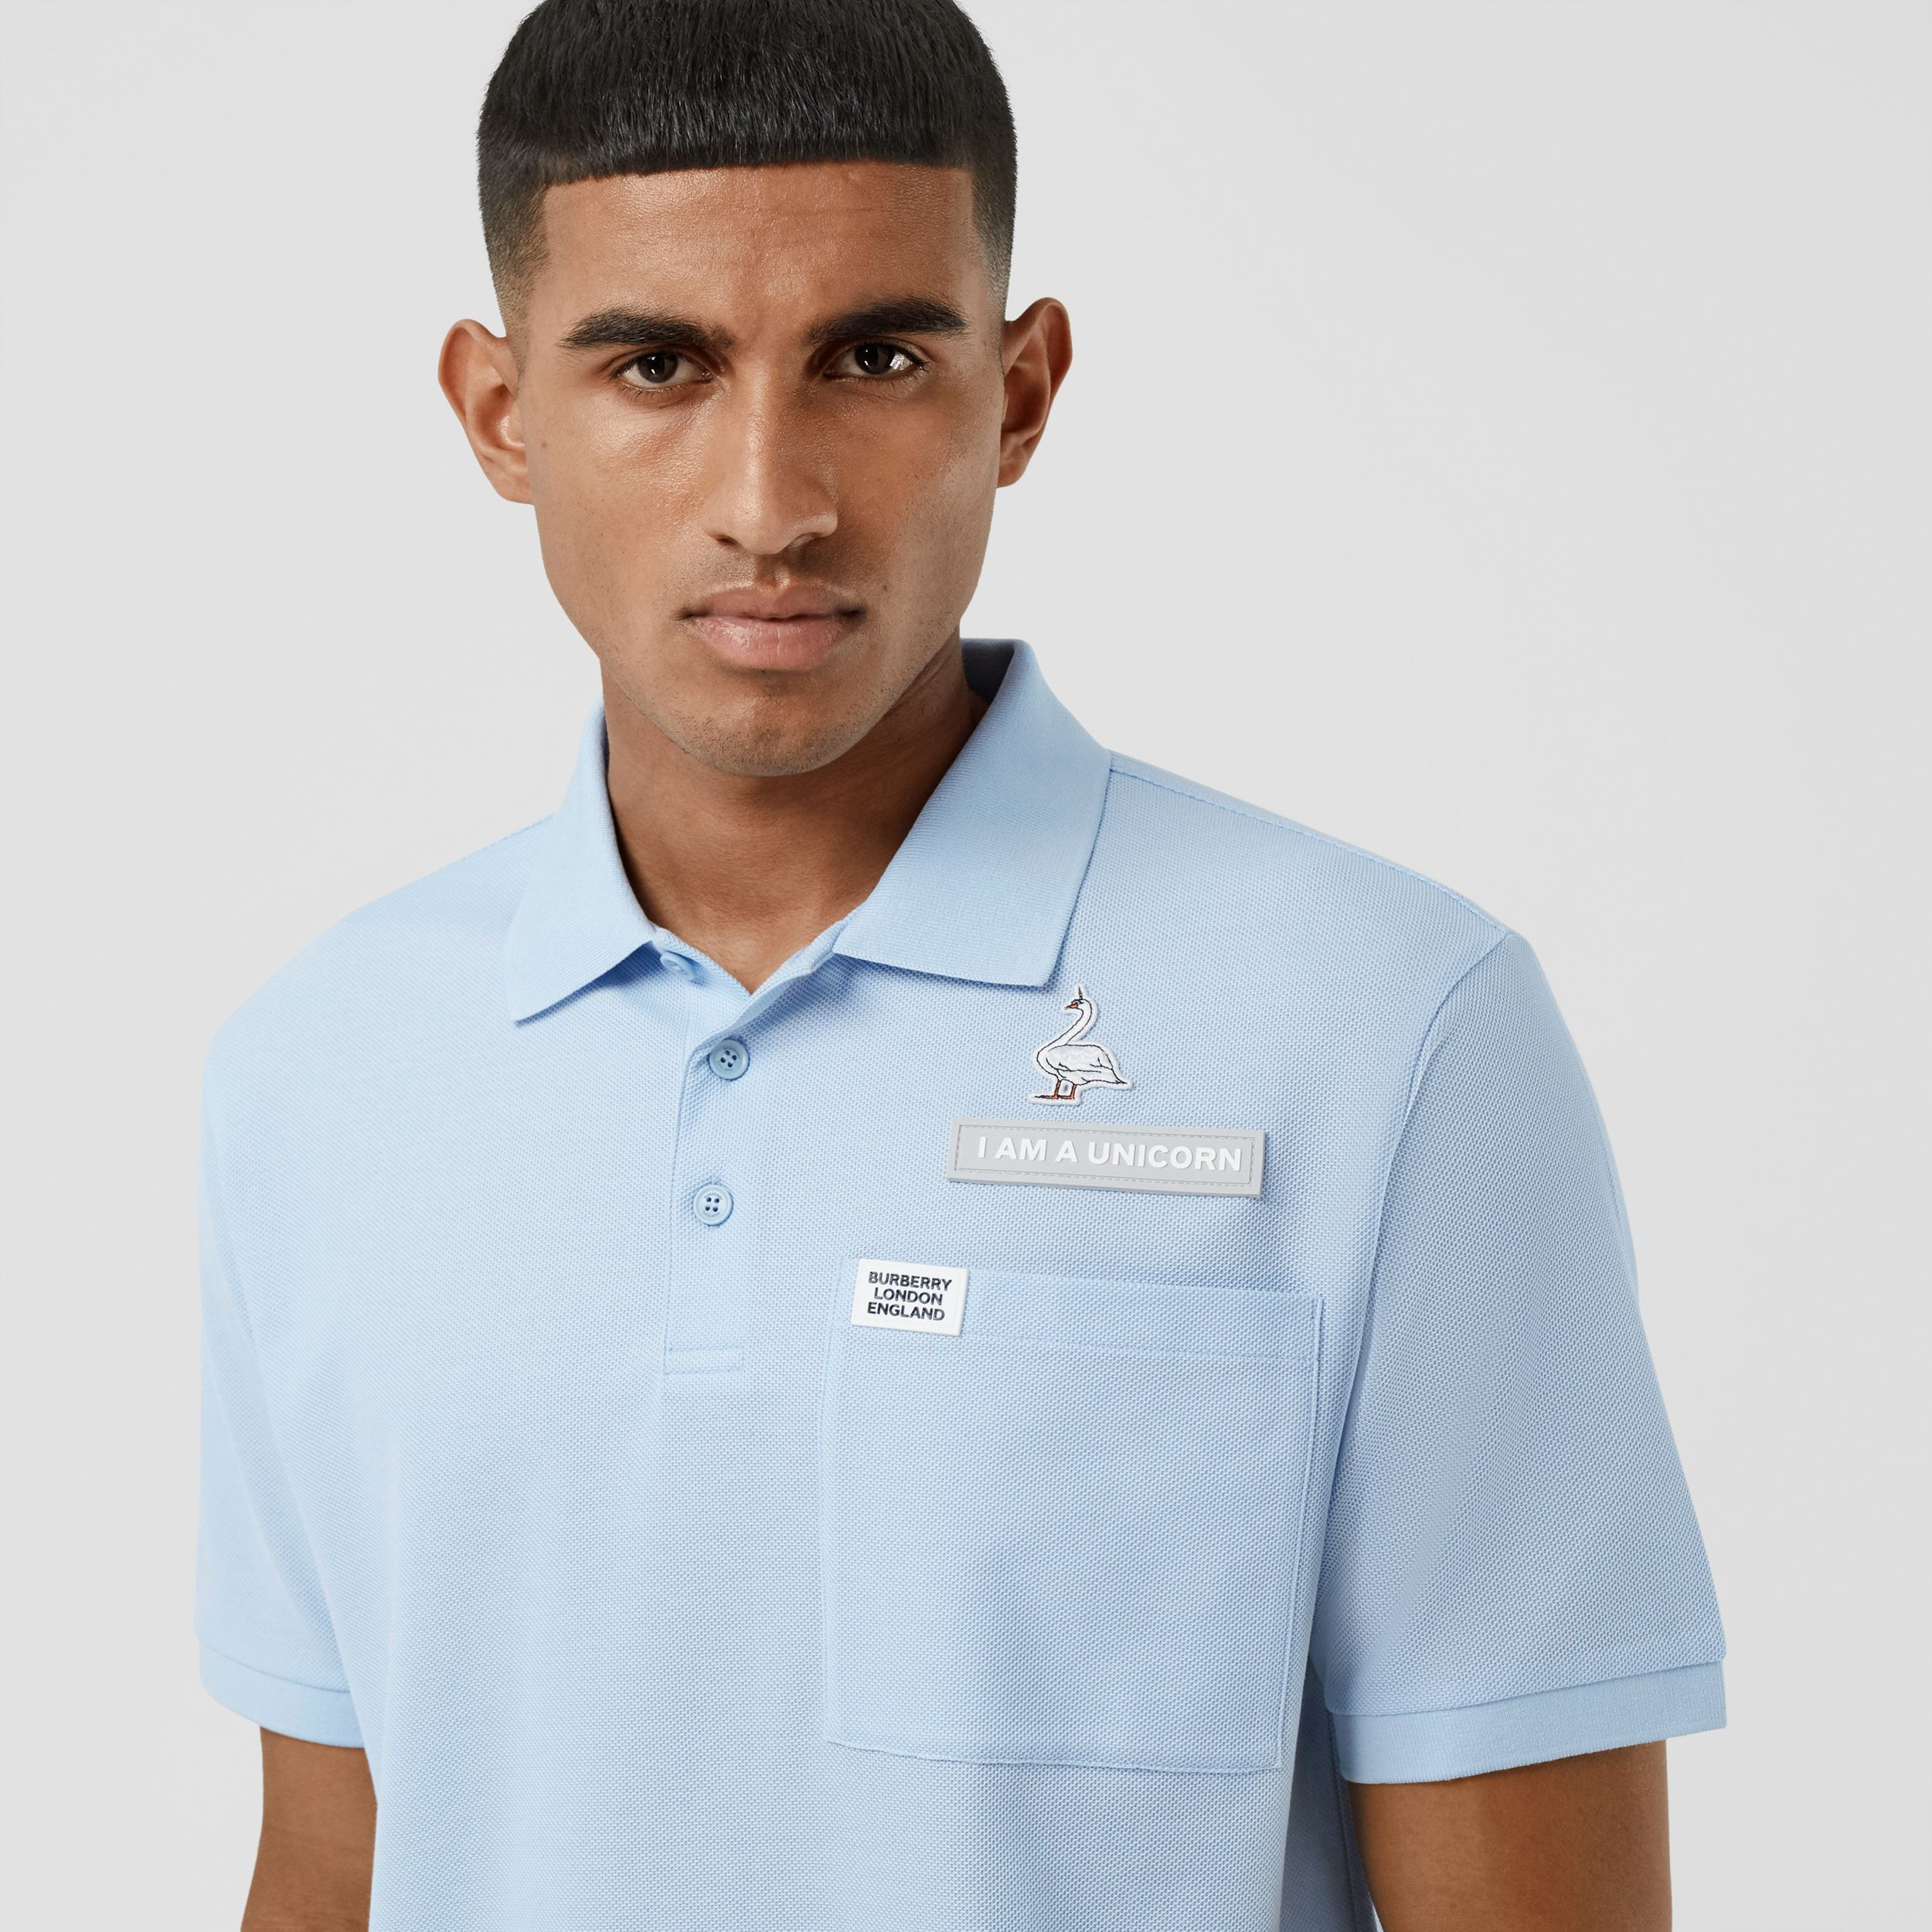 Swan and Slogan Appliqué Cotton Polo Shirt in Pale Blue - Men | Burberry - 2